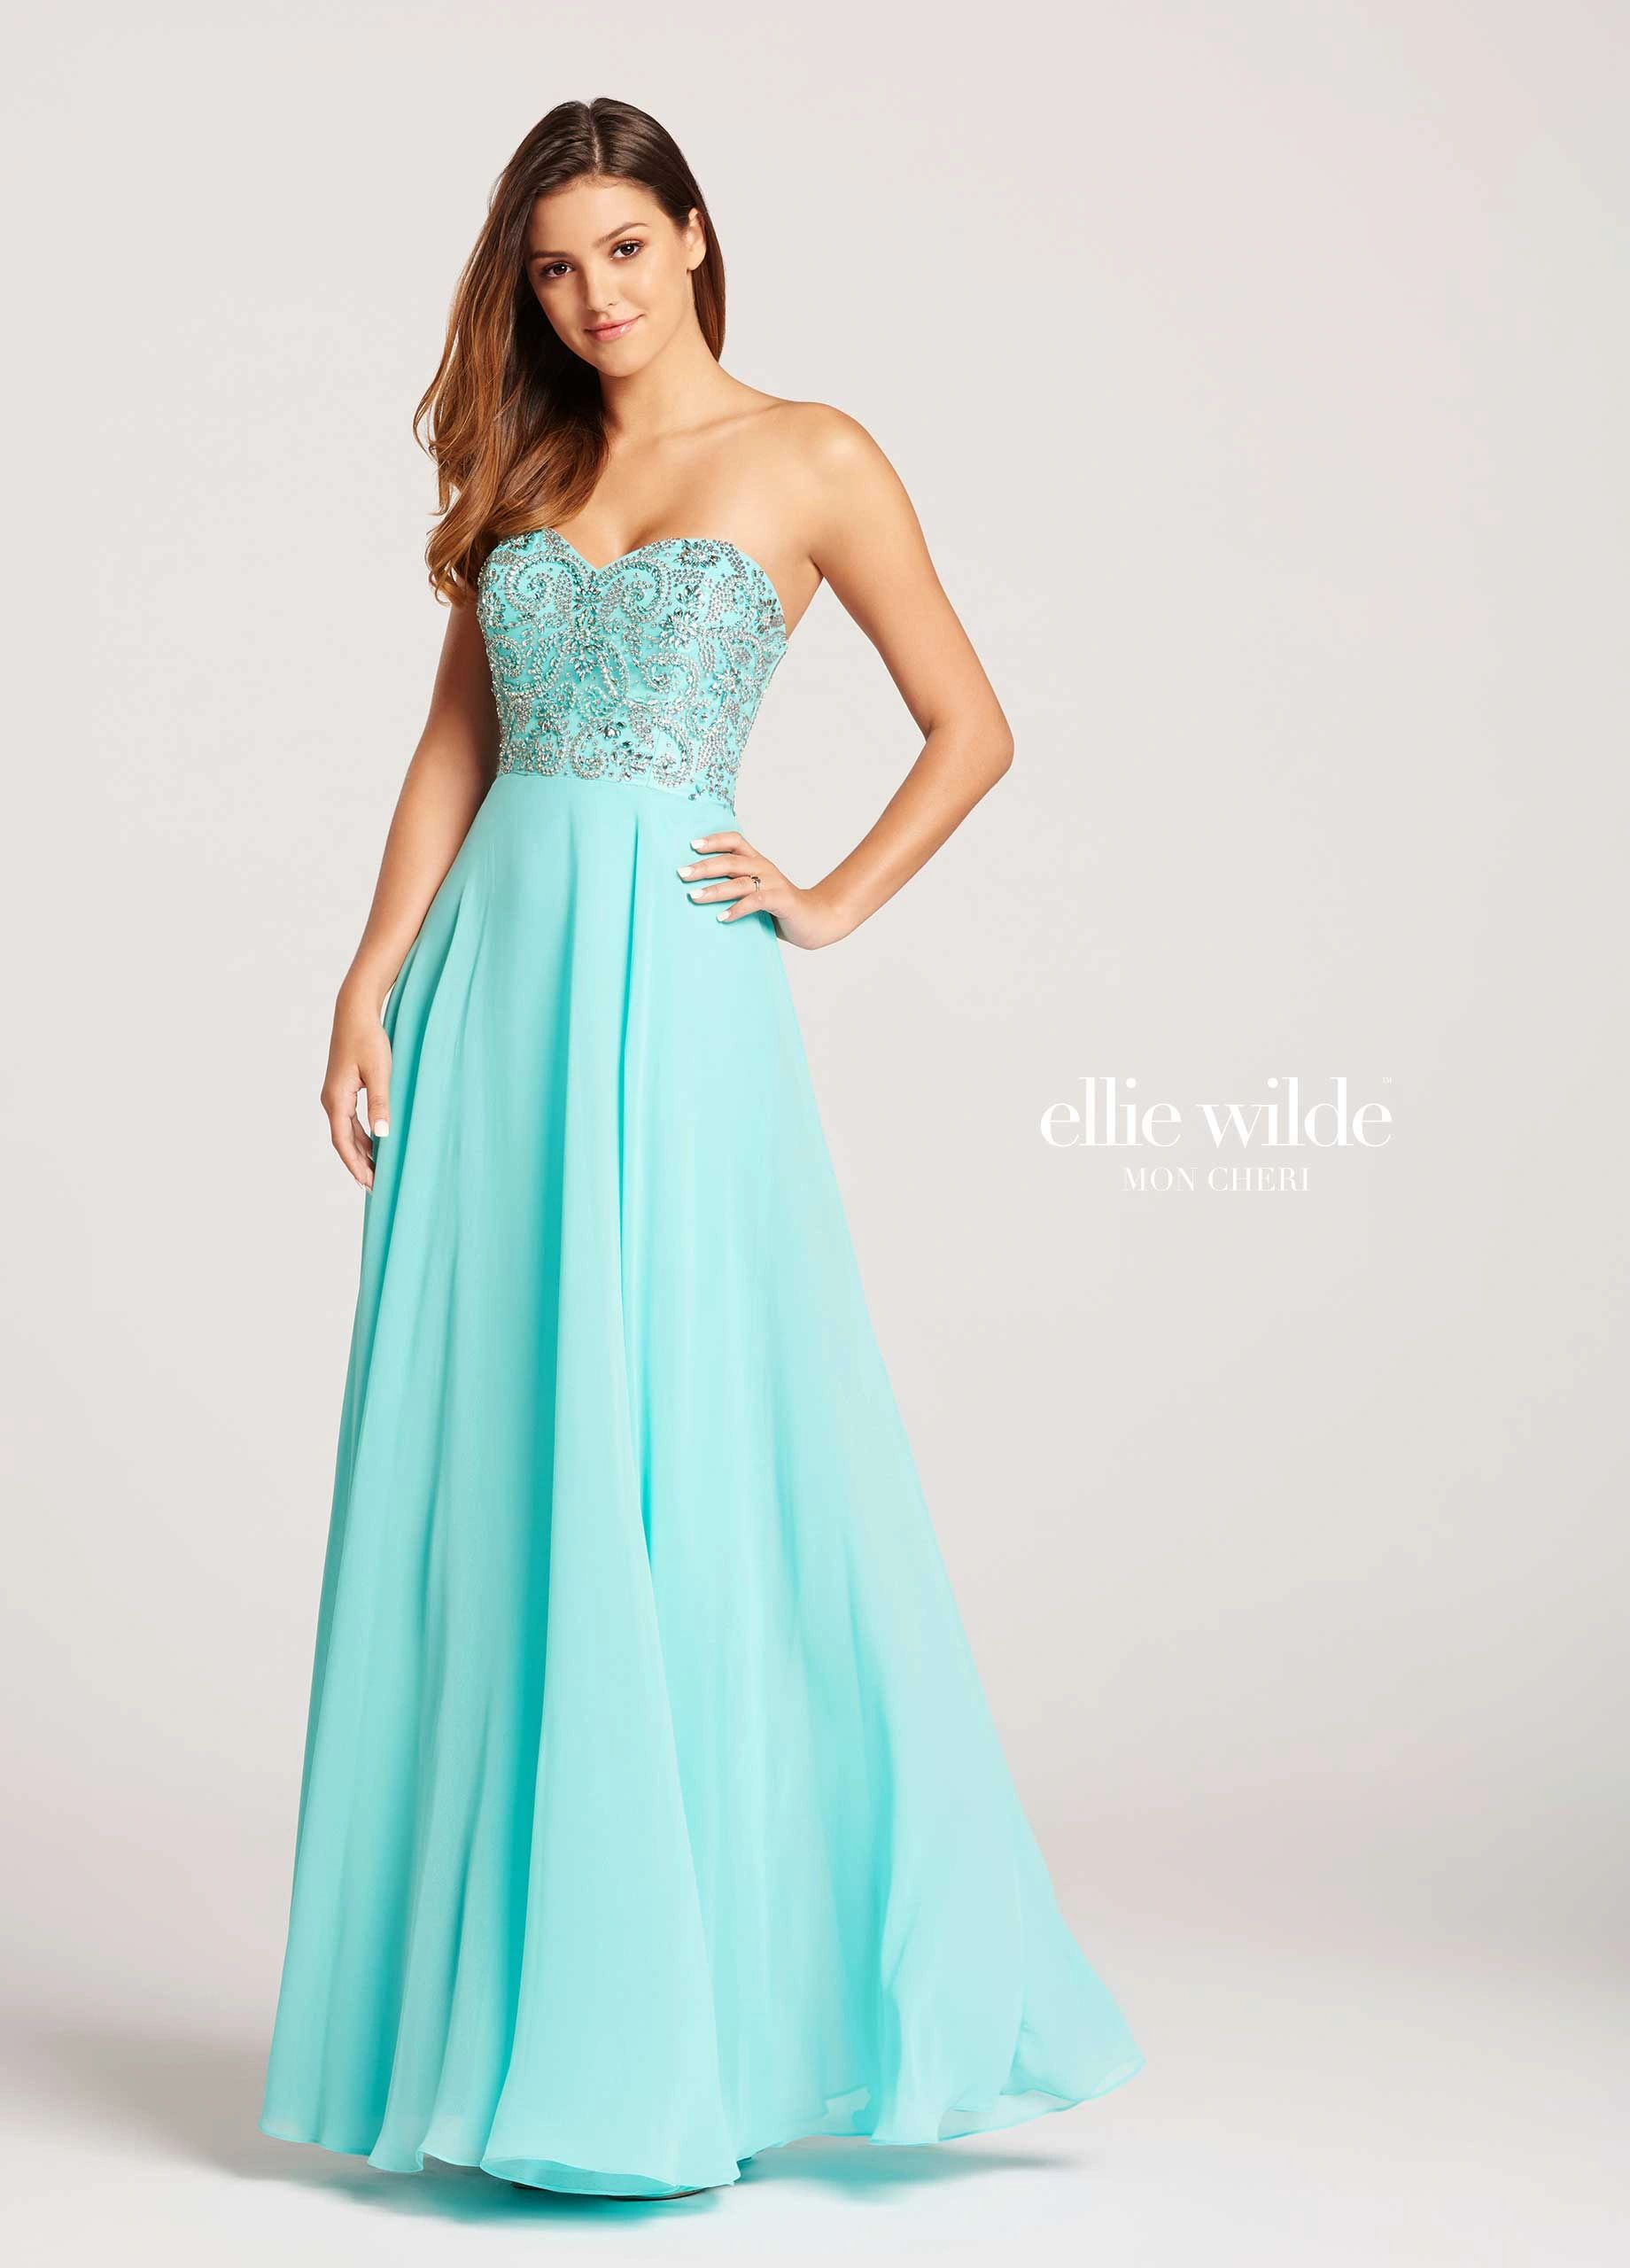 Old Fashioned Prom Dresses In Richmond Ky Ensign - Wedding Dress ...